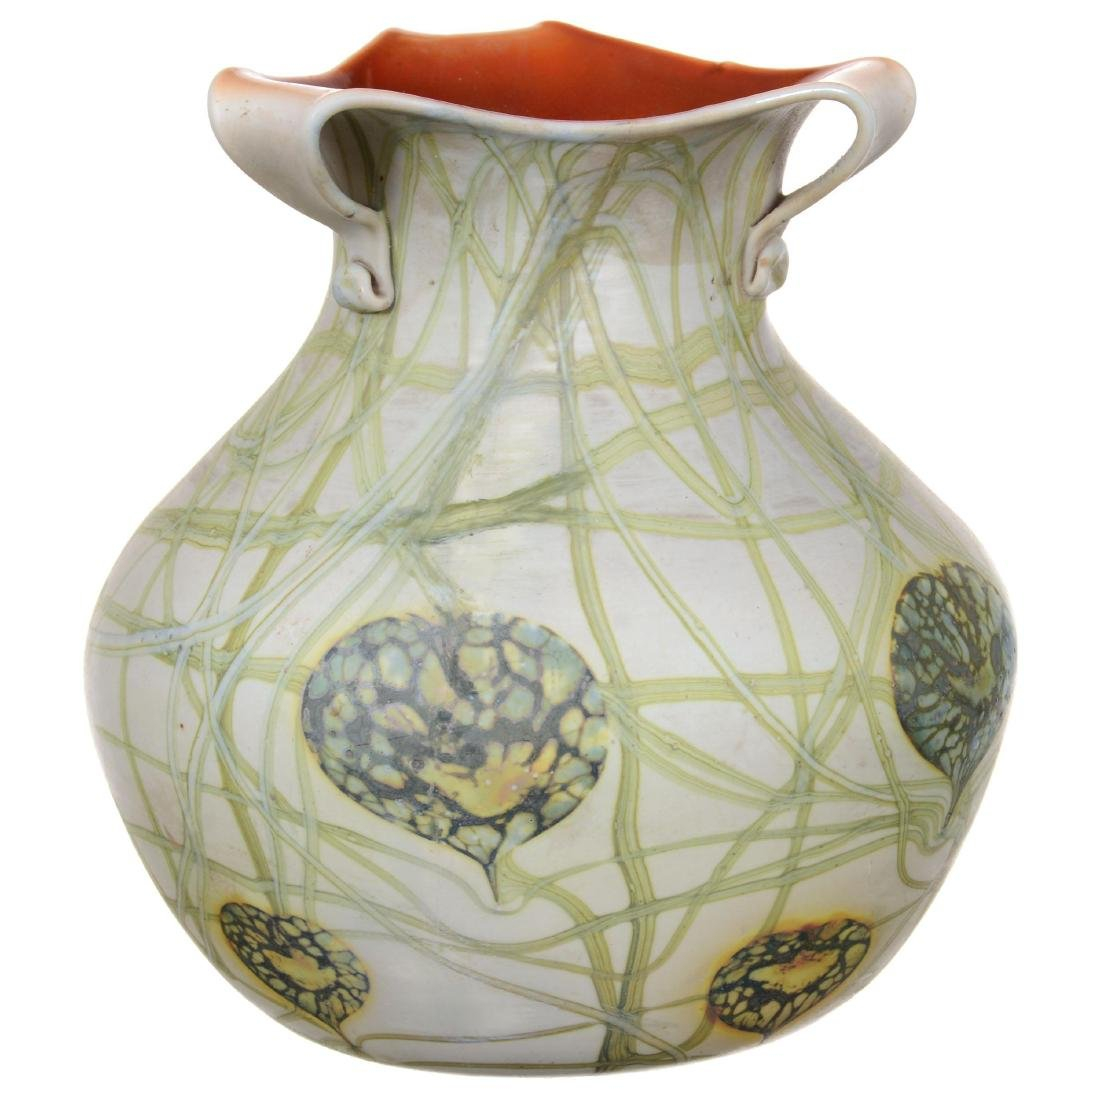 Unmarked Imperial Art Glass Vase